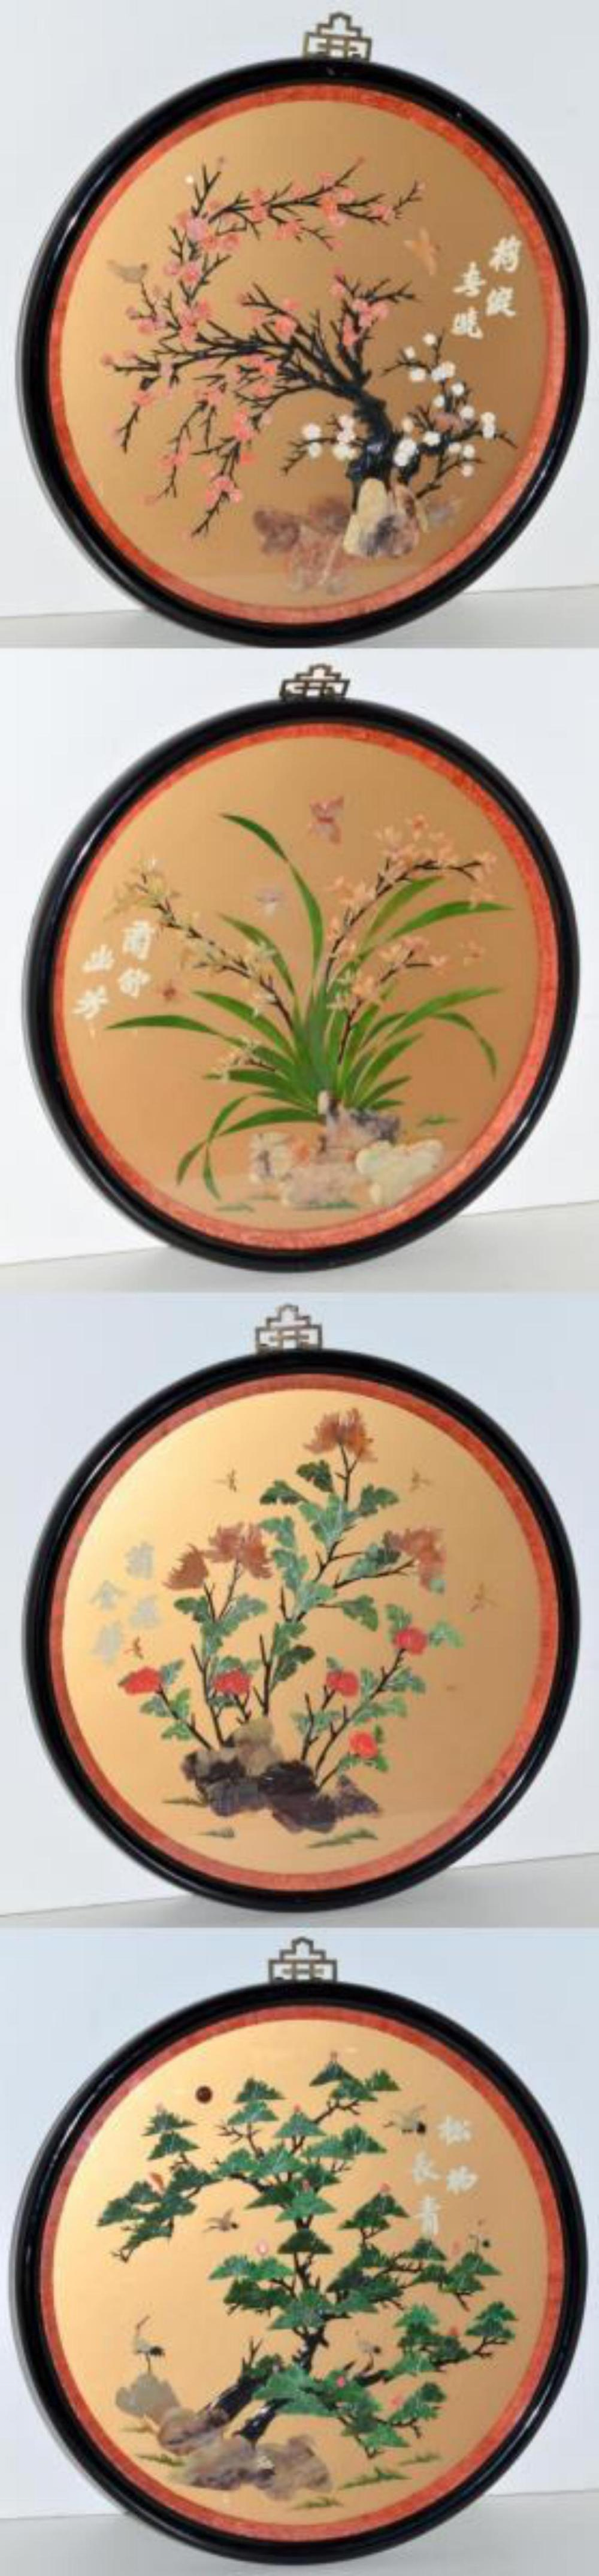 4 Framed Asian Theme Round Stone Coral Art Plaques